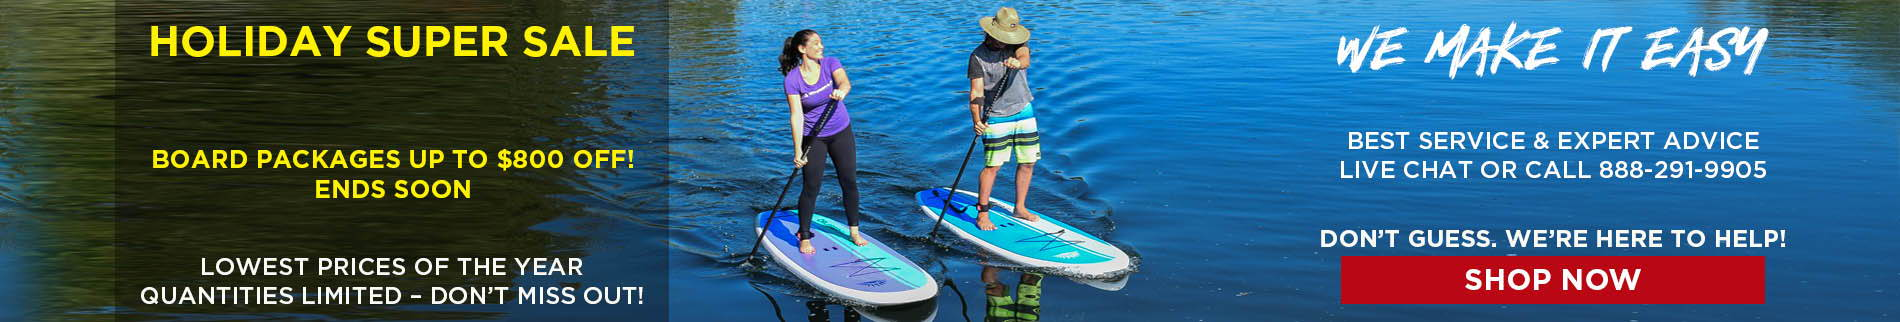 Couple of paddler boarders paddle boarding on beautiful lake during holiday